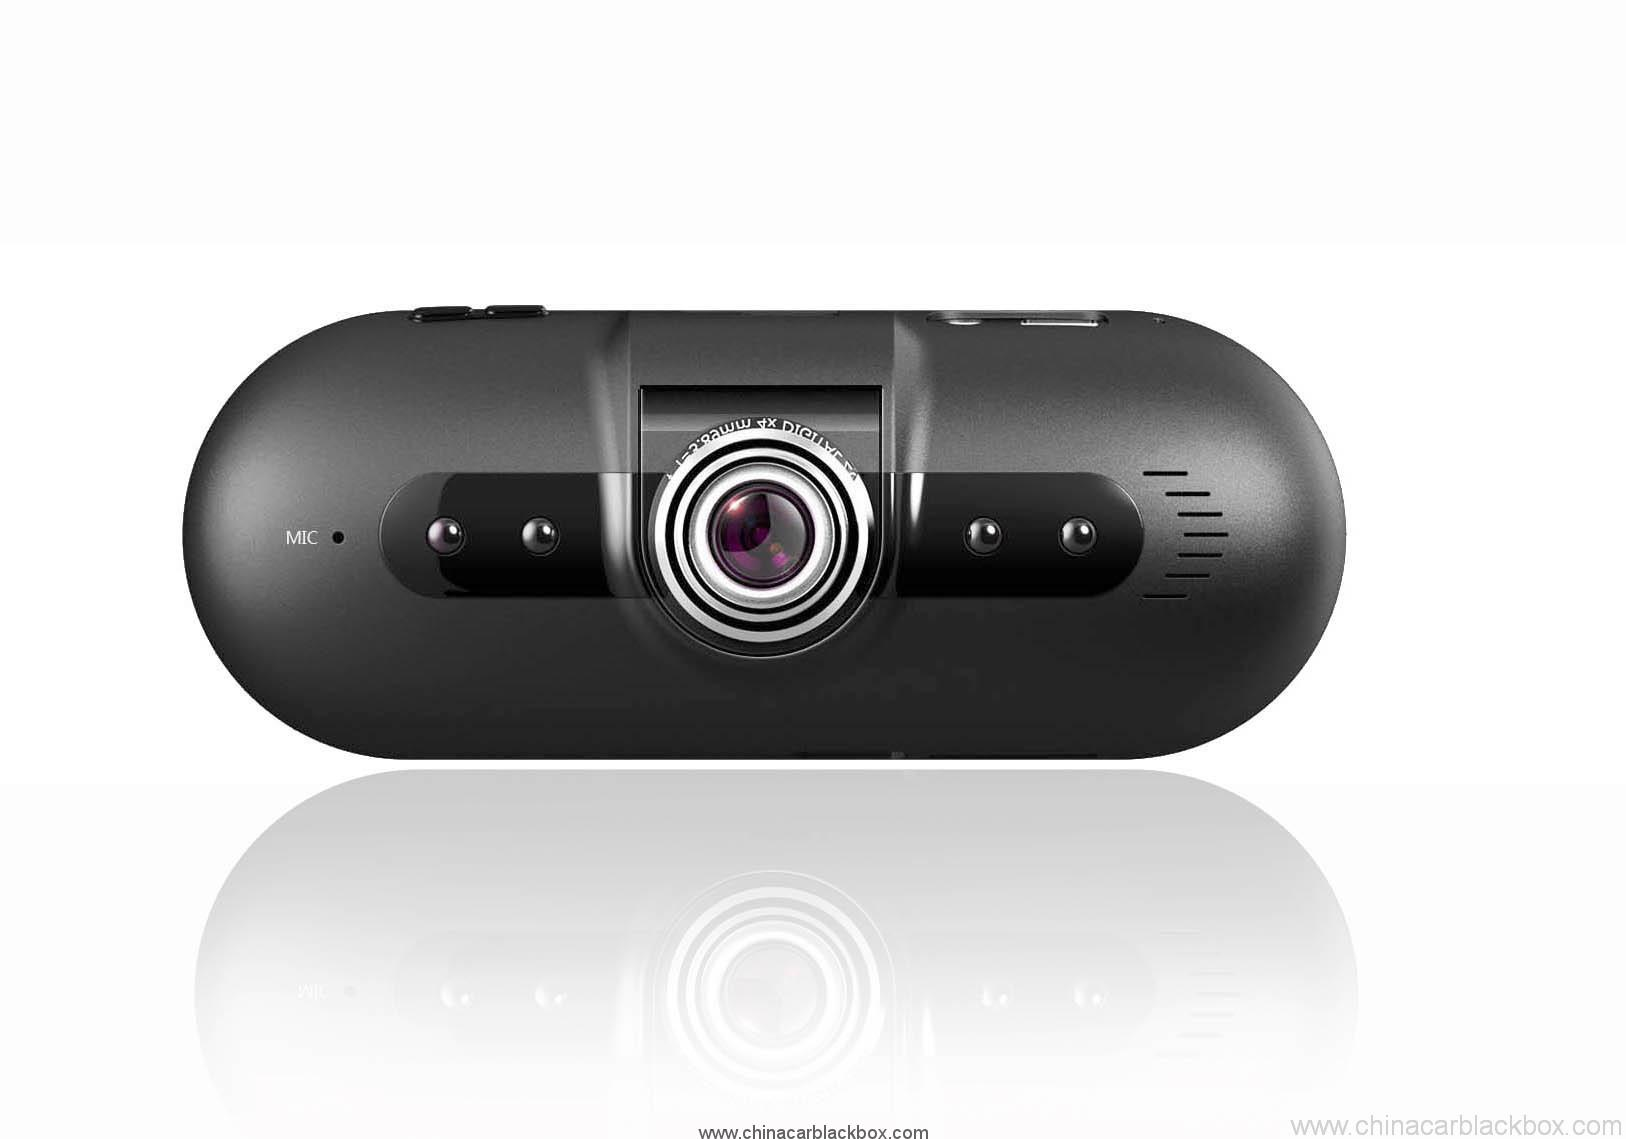 Car DVR with Built-in G-sensor for Auto-saving Undeletable Video On Colision 3